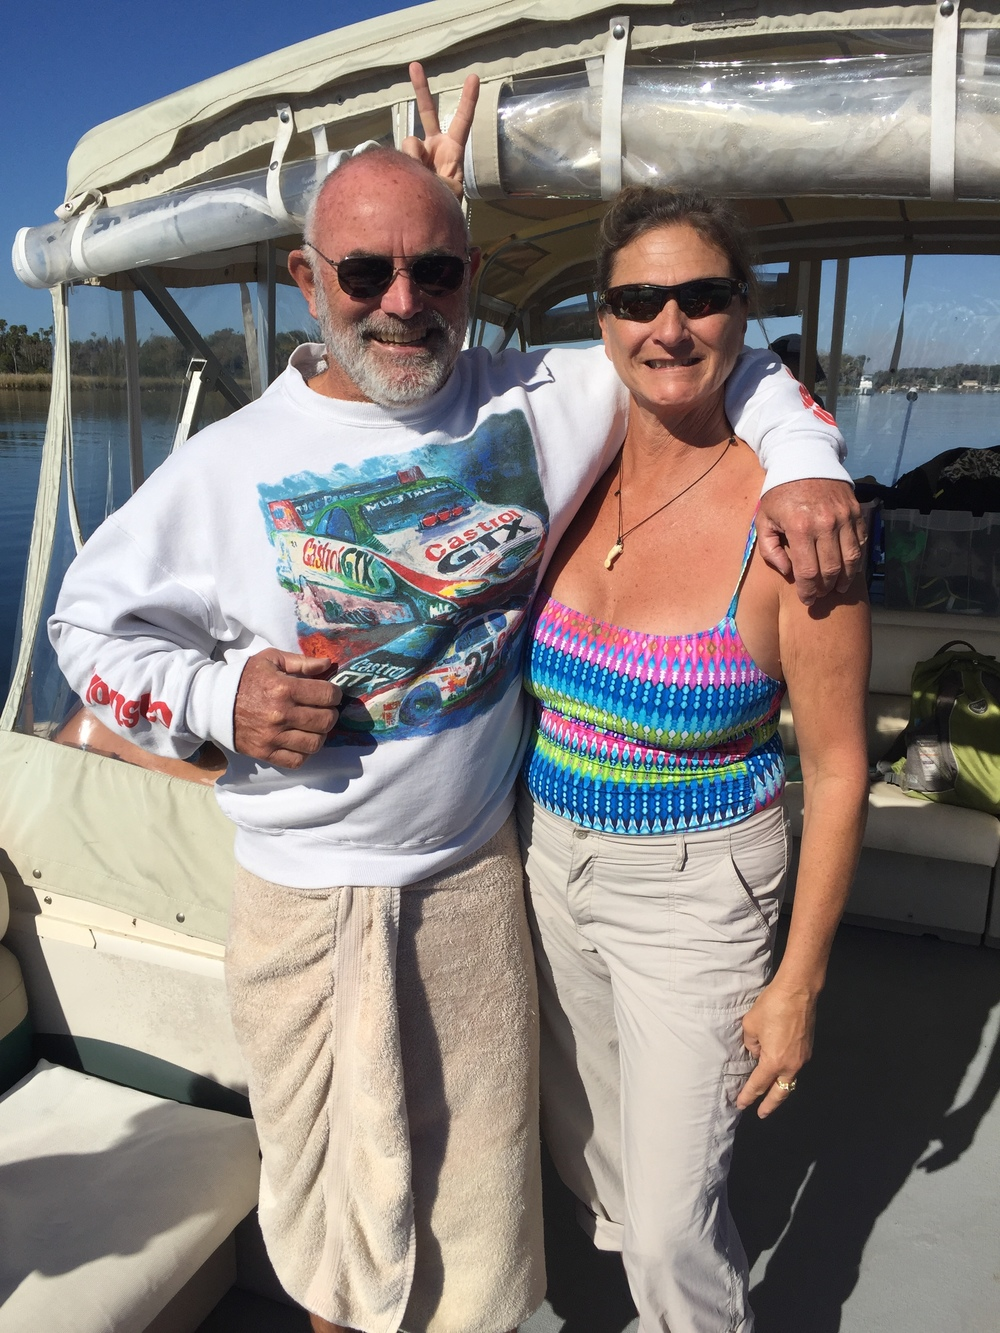 Captains Mike and Stacy Dunn of Manatees in Paradise